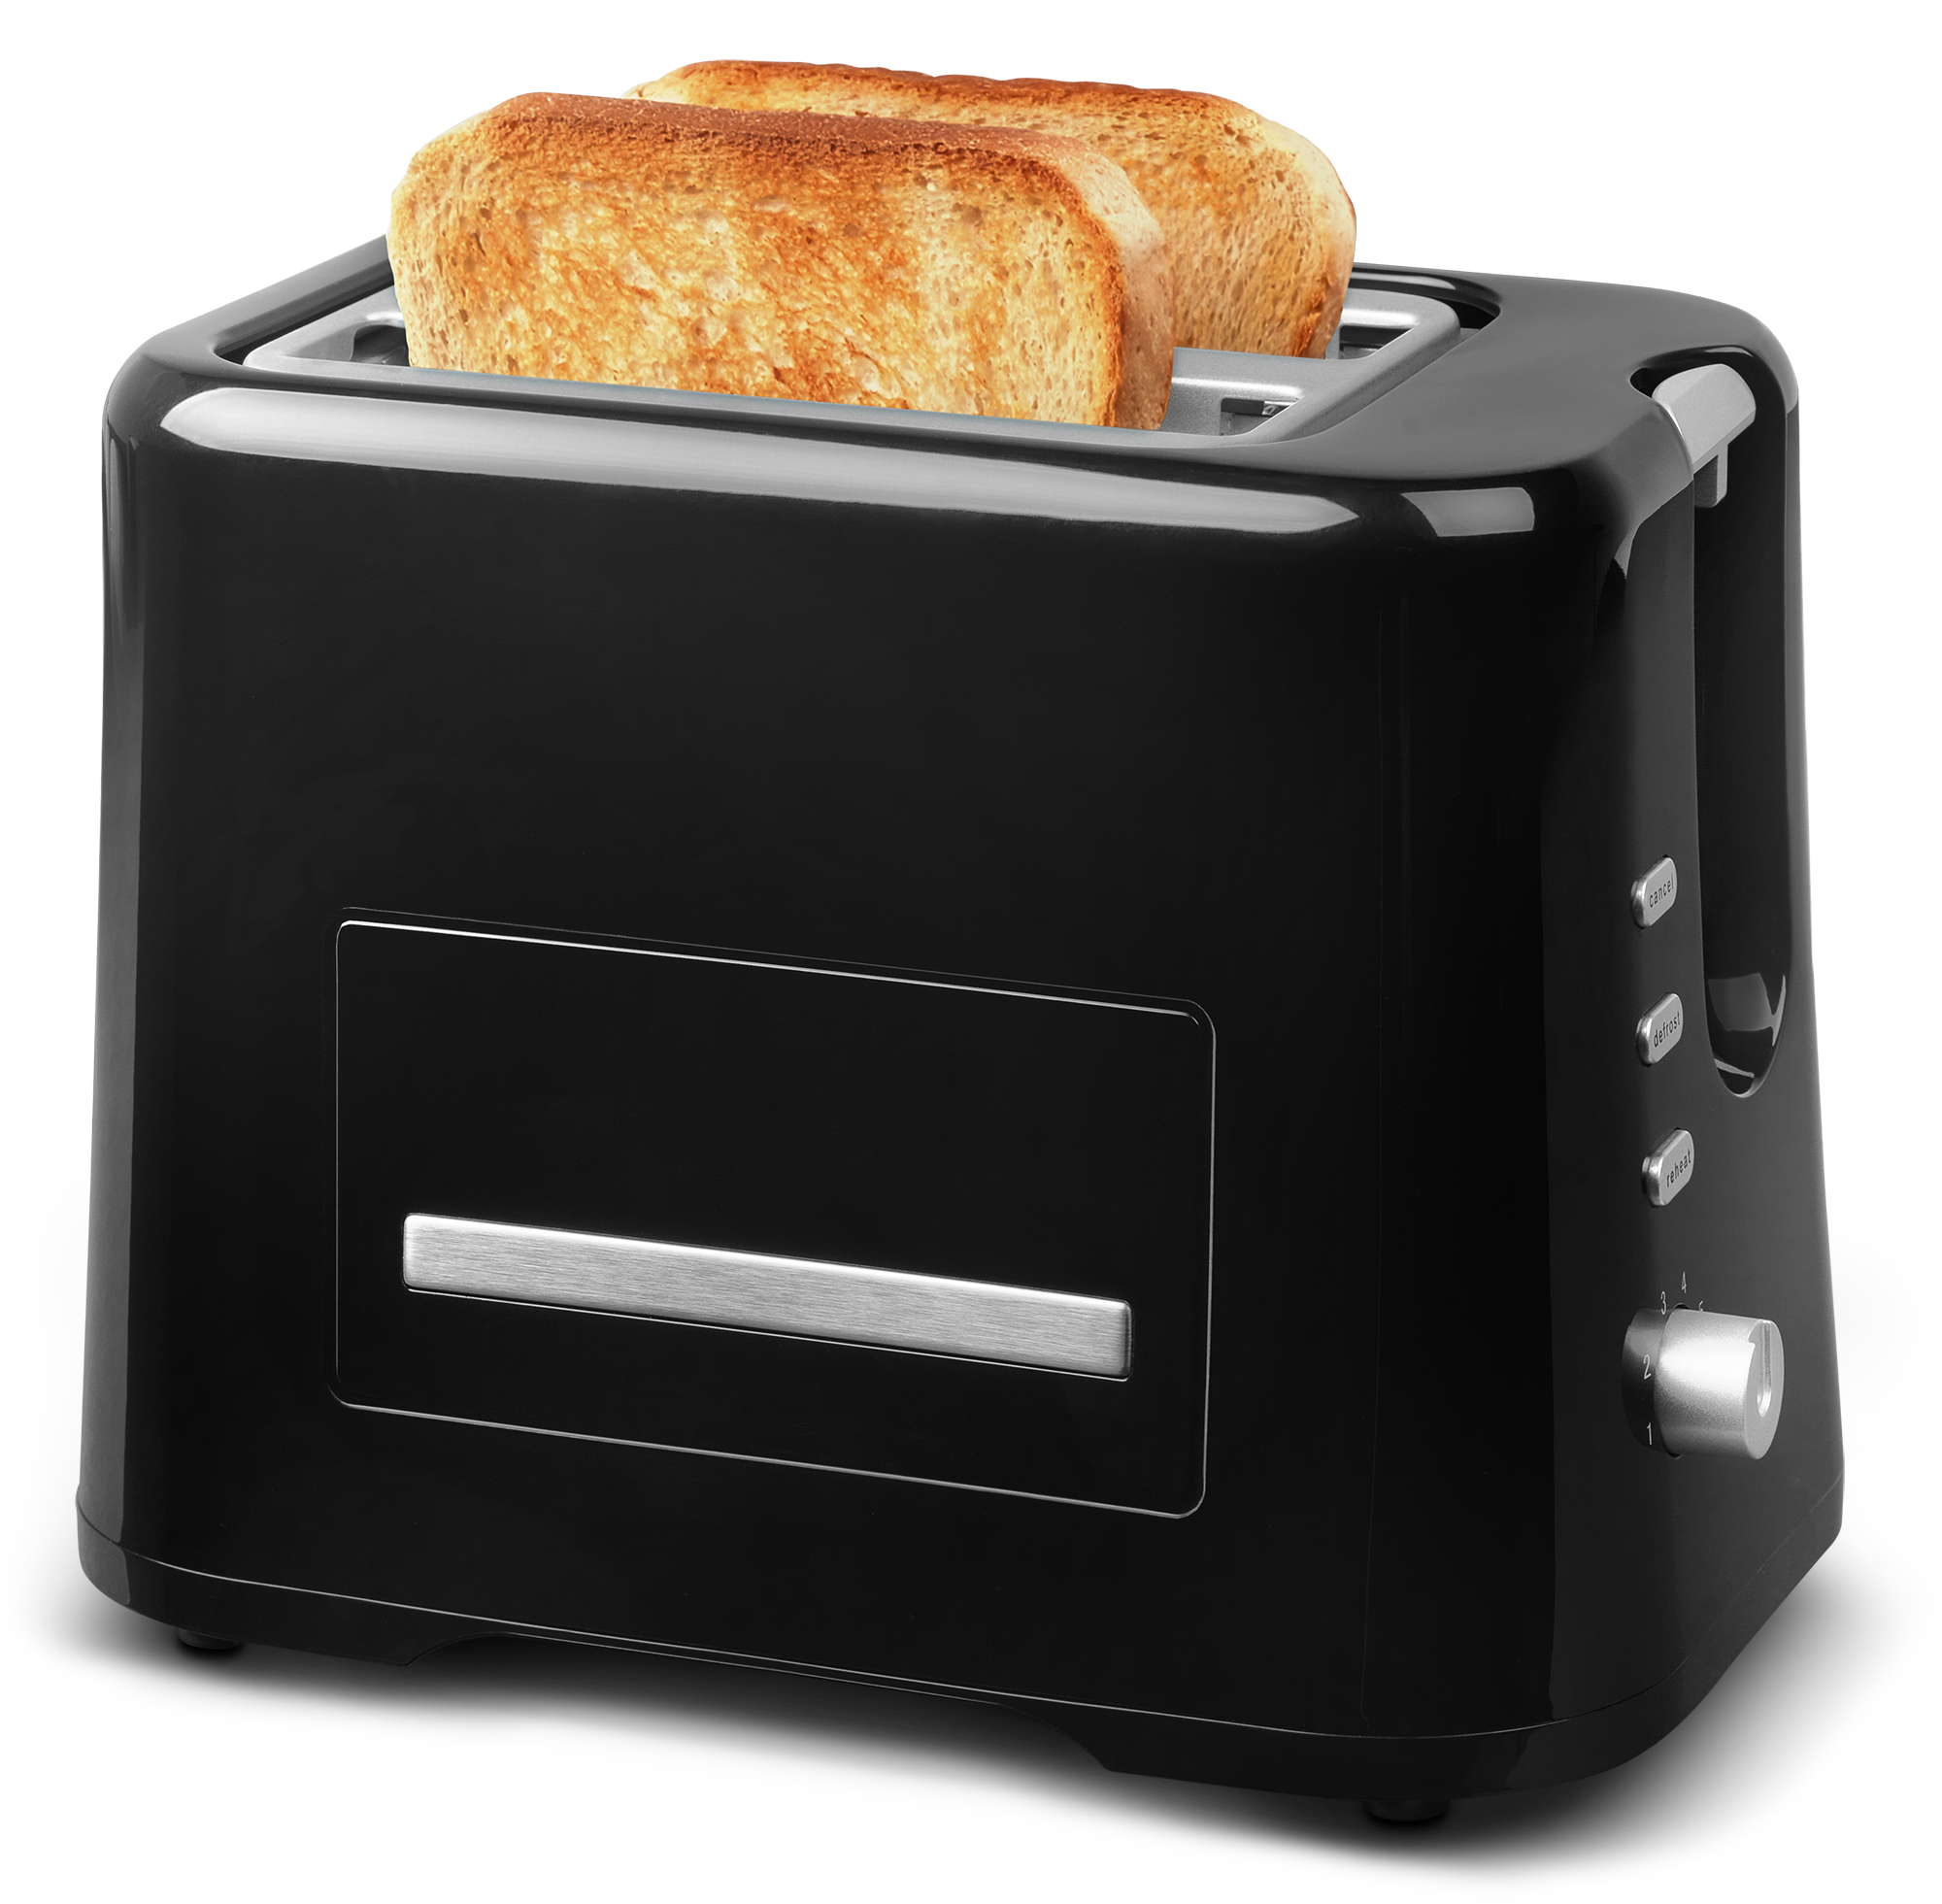 Toaster MEDION compact